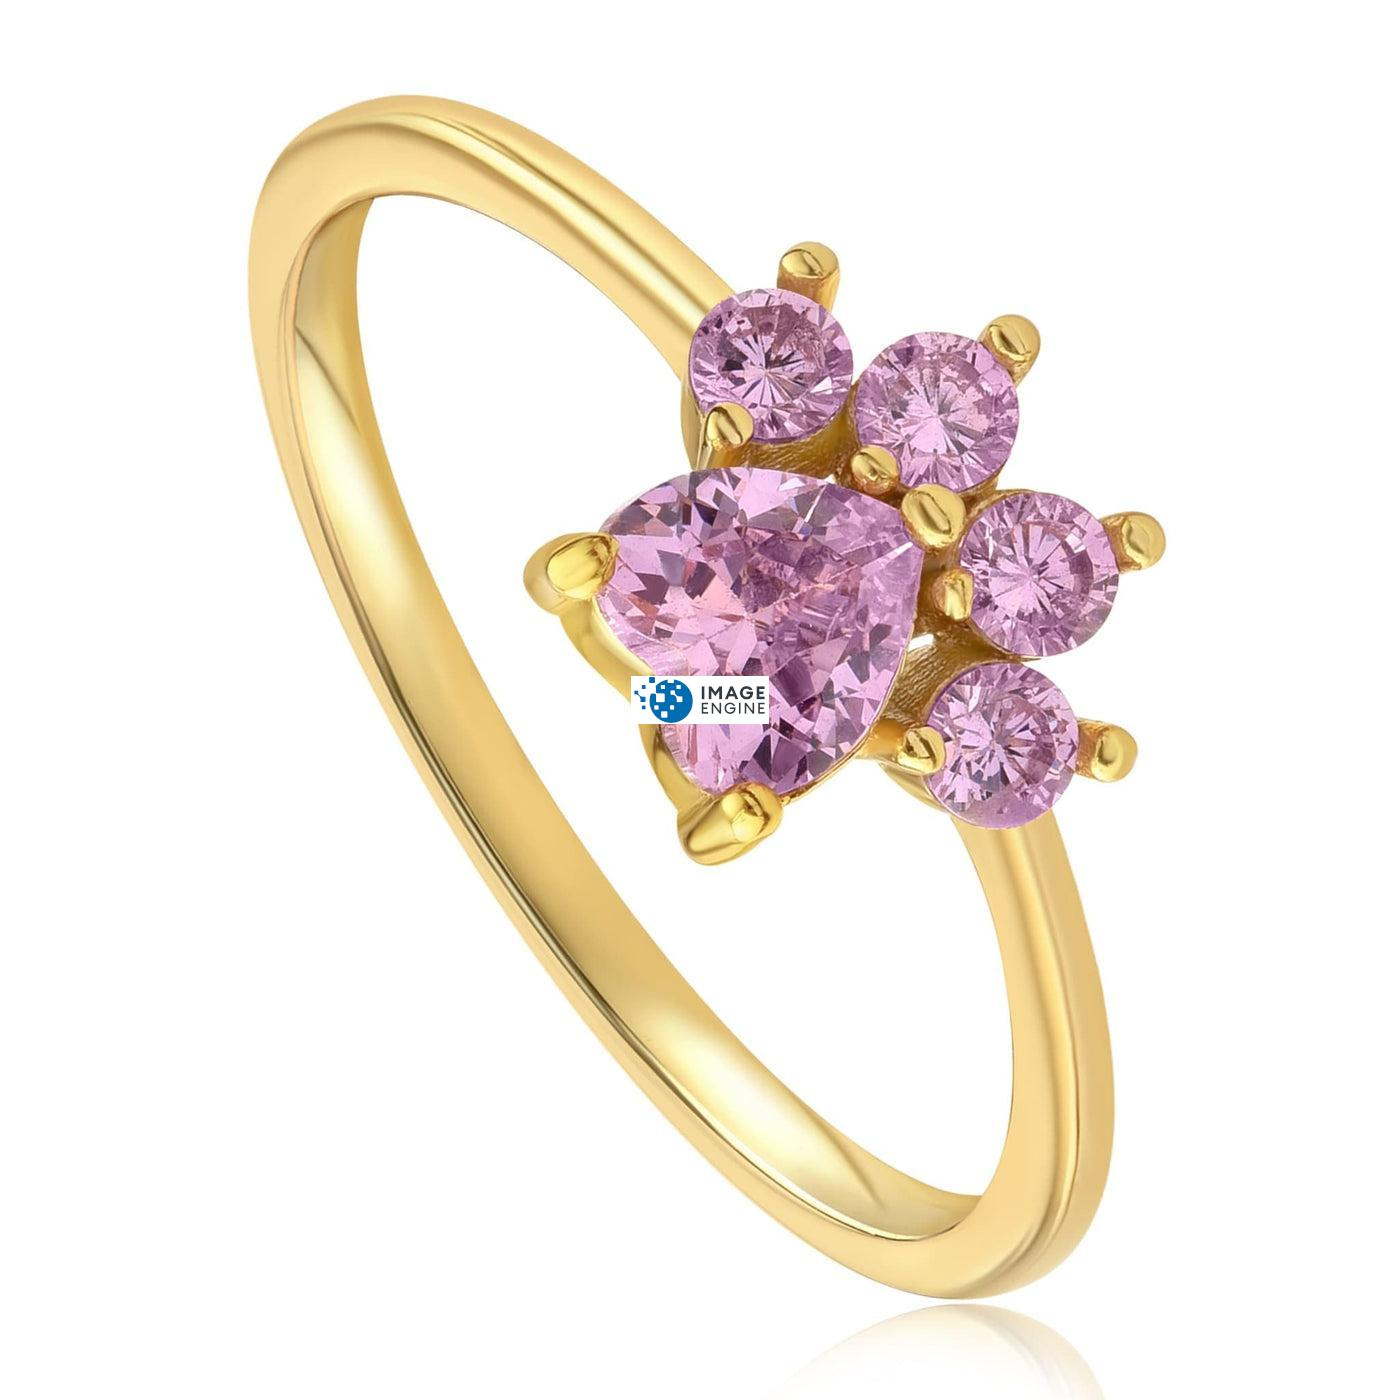 Bella Paw Rose Quartz Ring - Three Quarter View - 18K Yellow Gold Vermeil